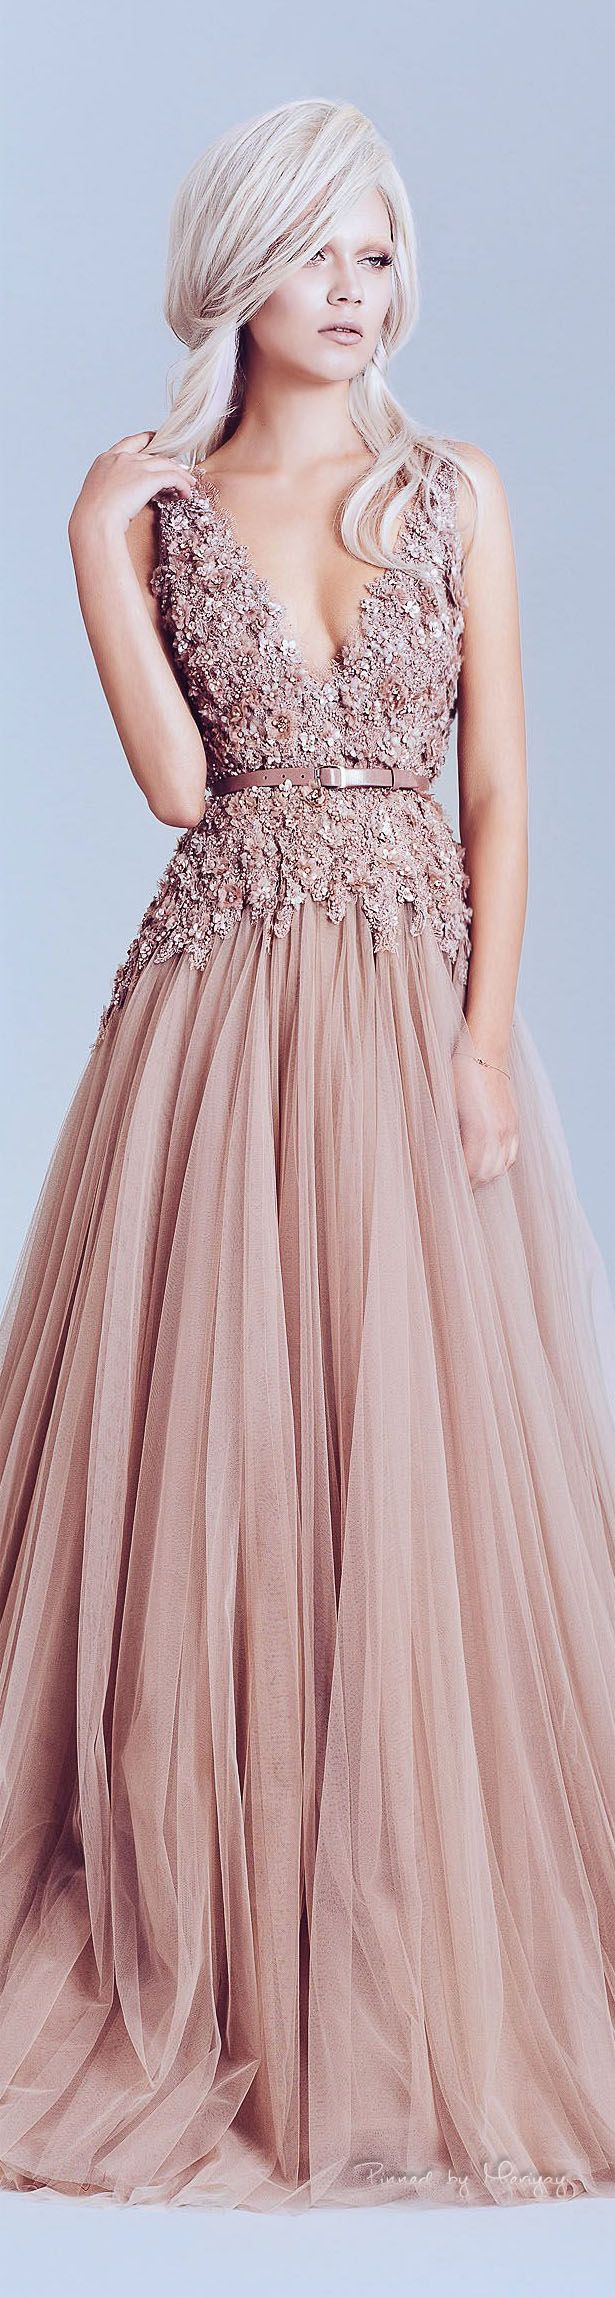 Alfazairy Spring-summer 2015. #gorgeous #dress